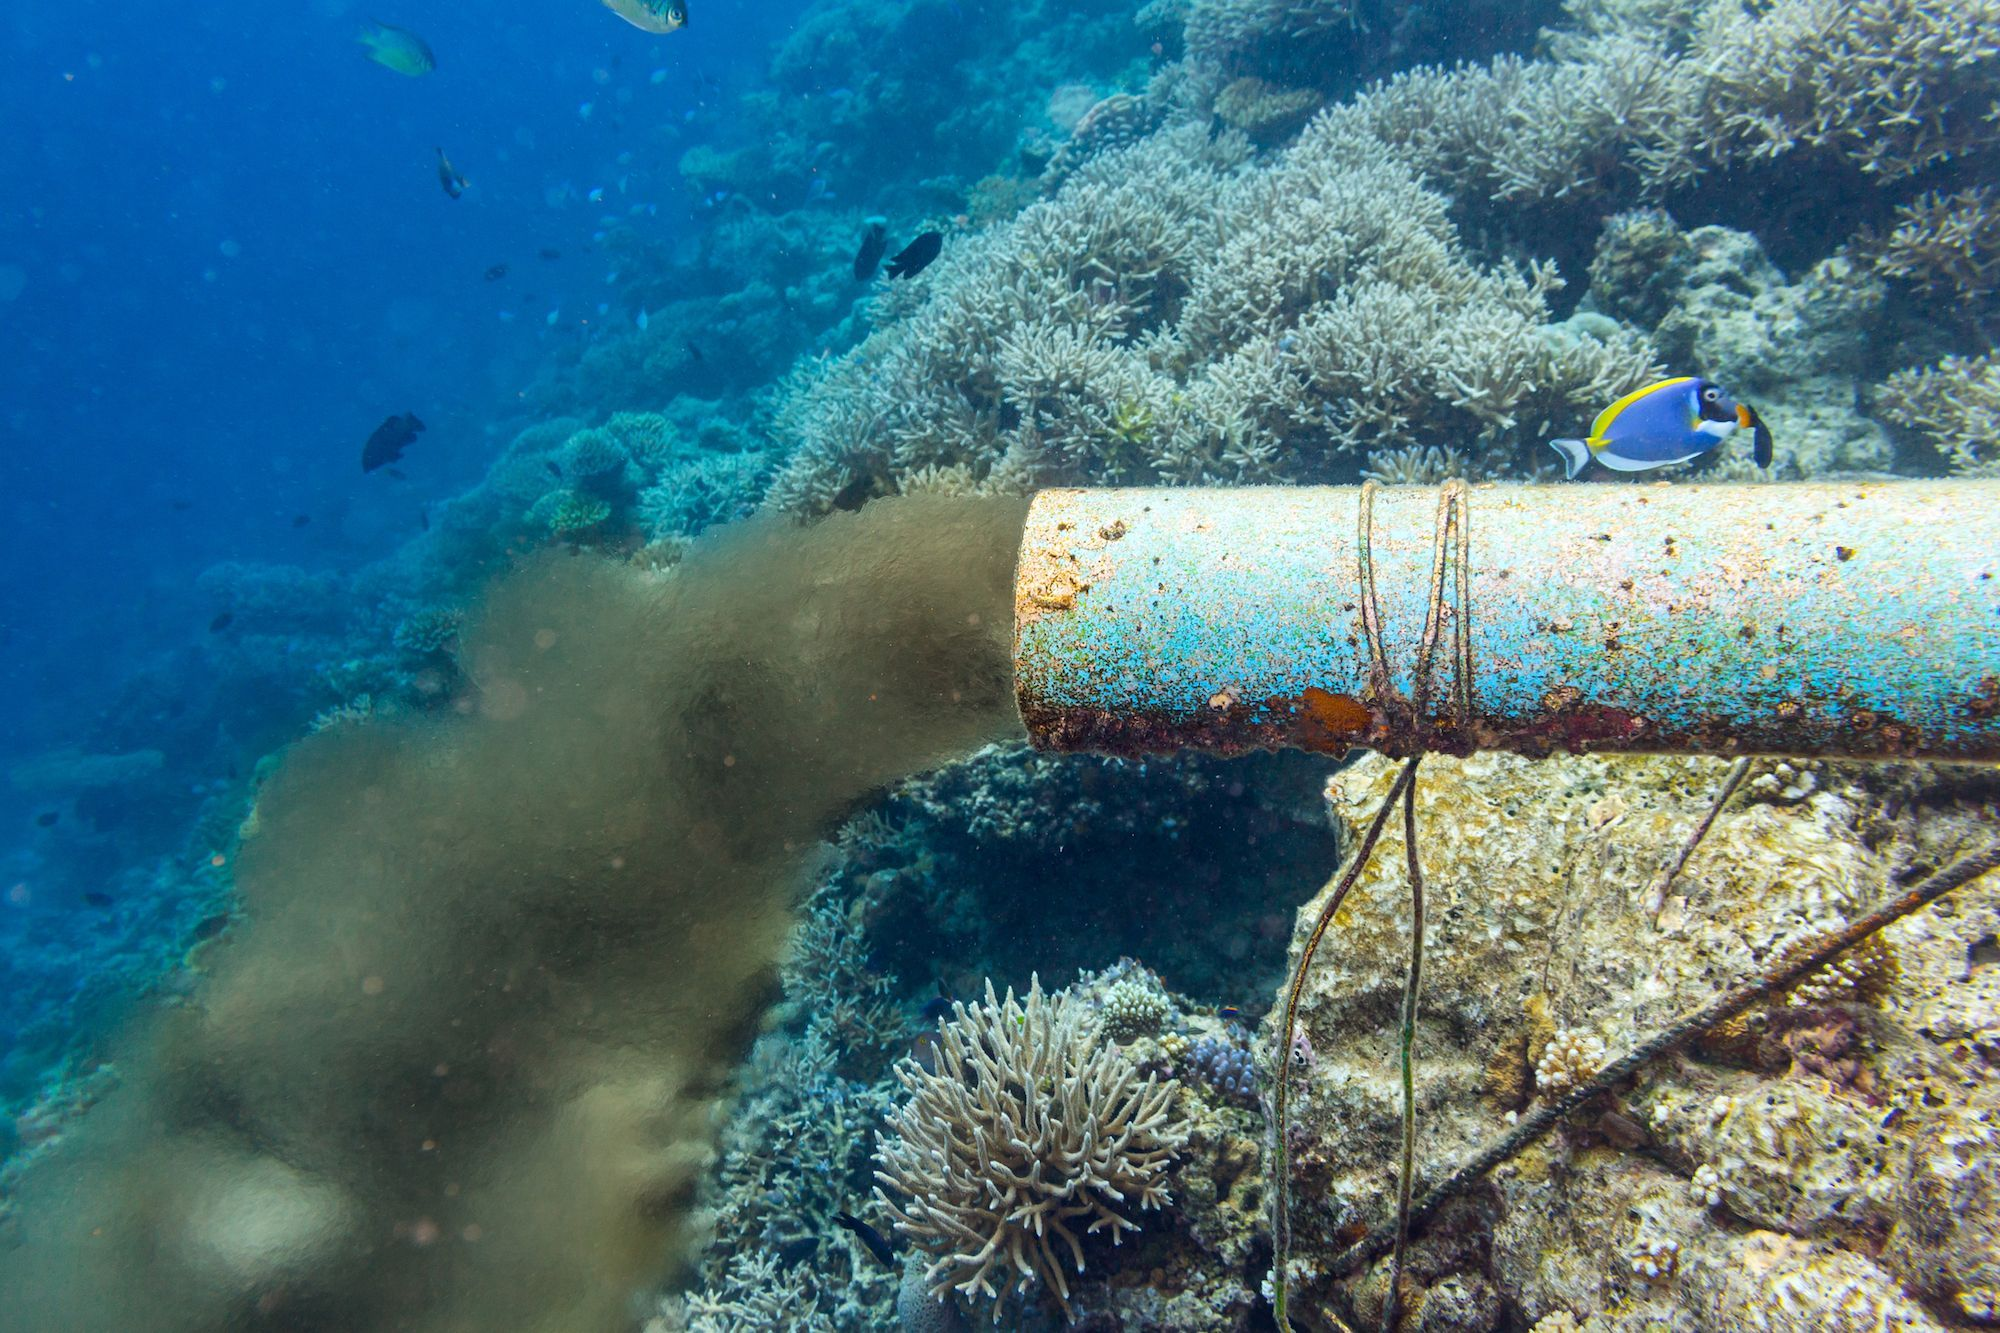 Heartbreaking causes and effects of ocean pollution